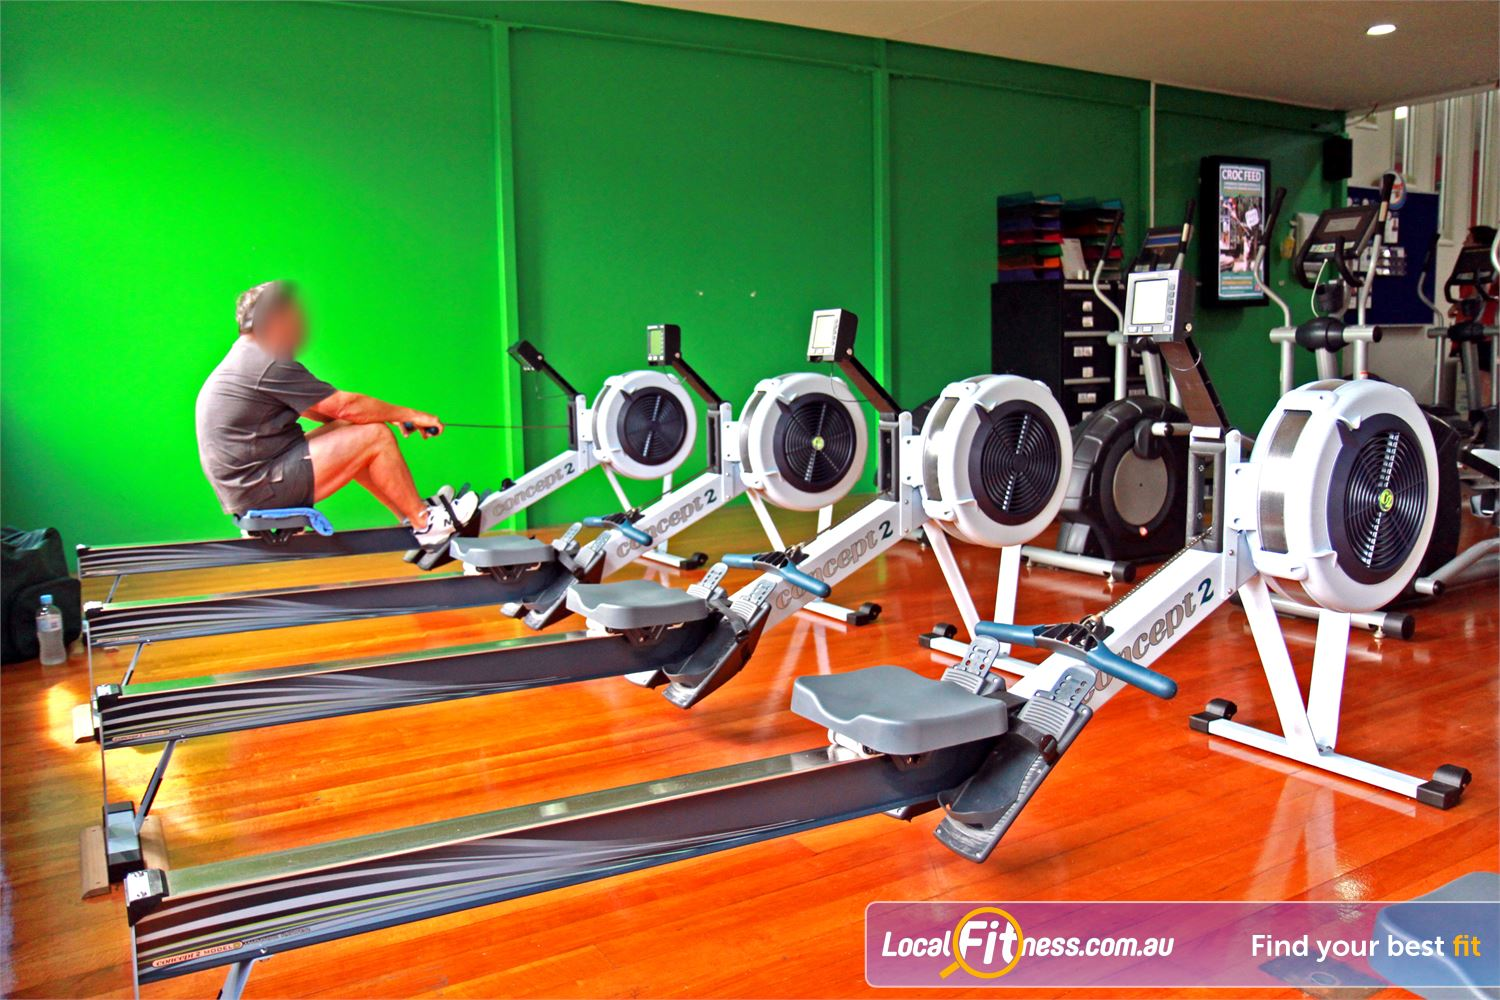 Goodlife Health Clubs Morningside Vary your cardio training with indoor rowing.